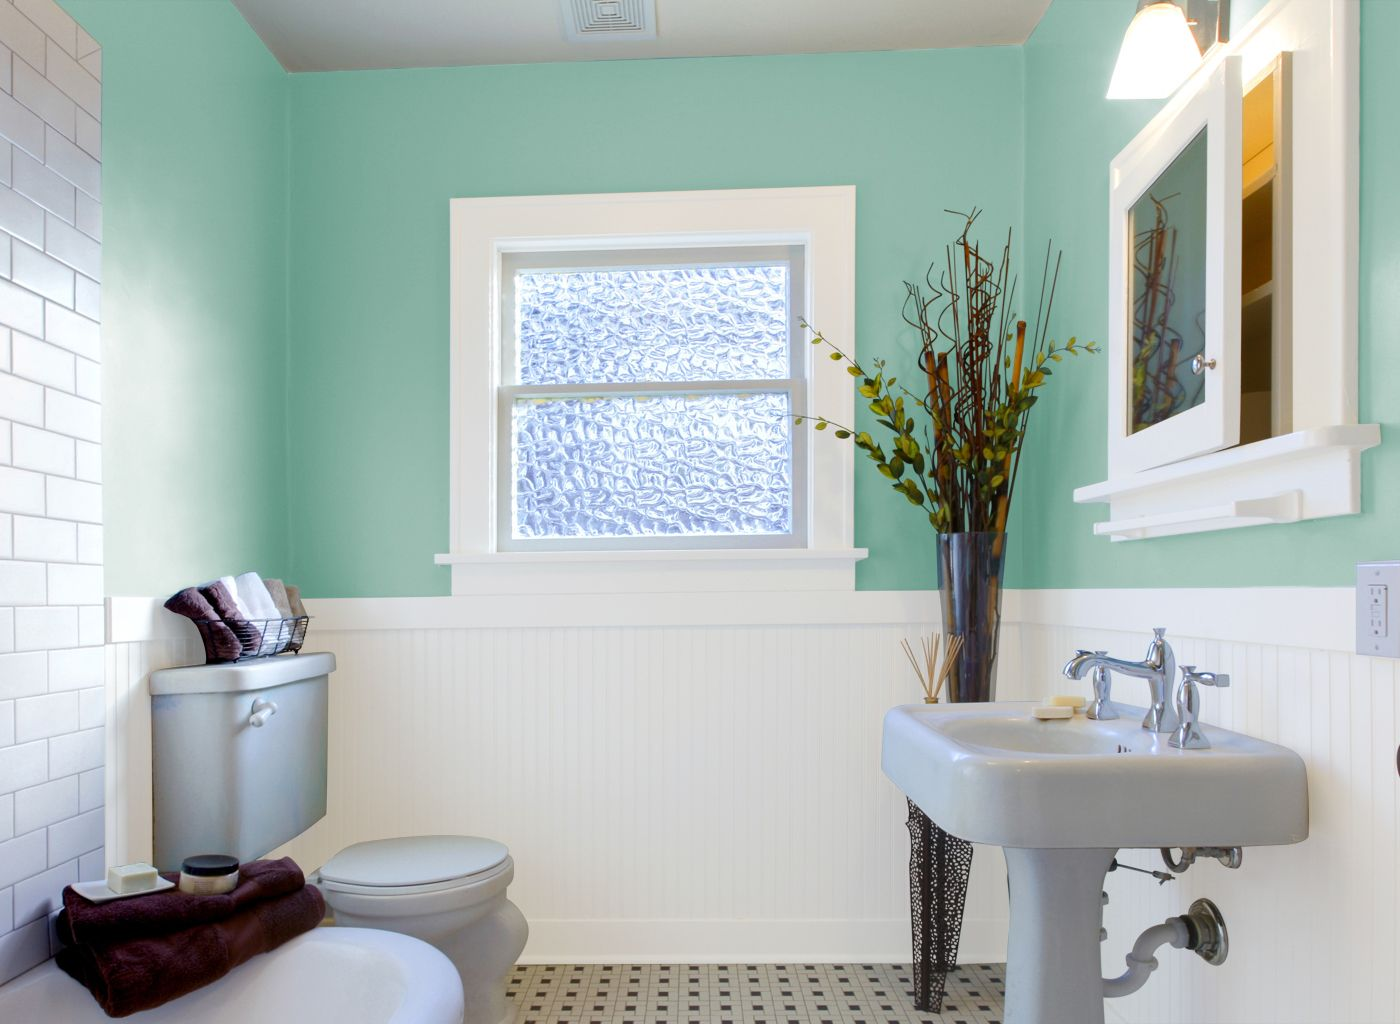 Bathroom painting ideas green - Paint Your Bathroom In A Wonderful Color Palette Of Paint Colors From Glidden Com Your Choice For Bathroom Paint Colors